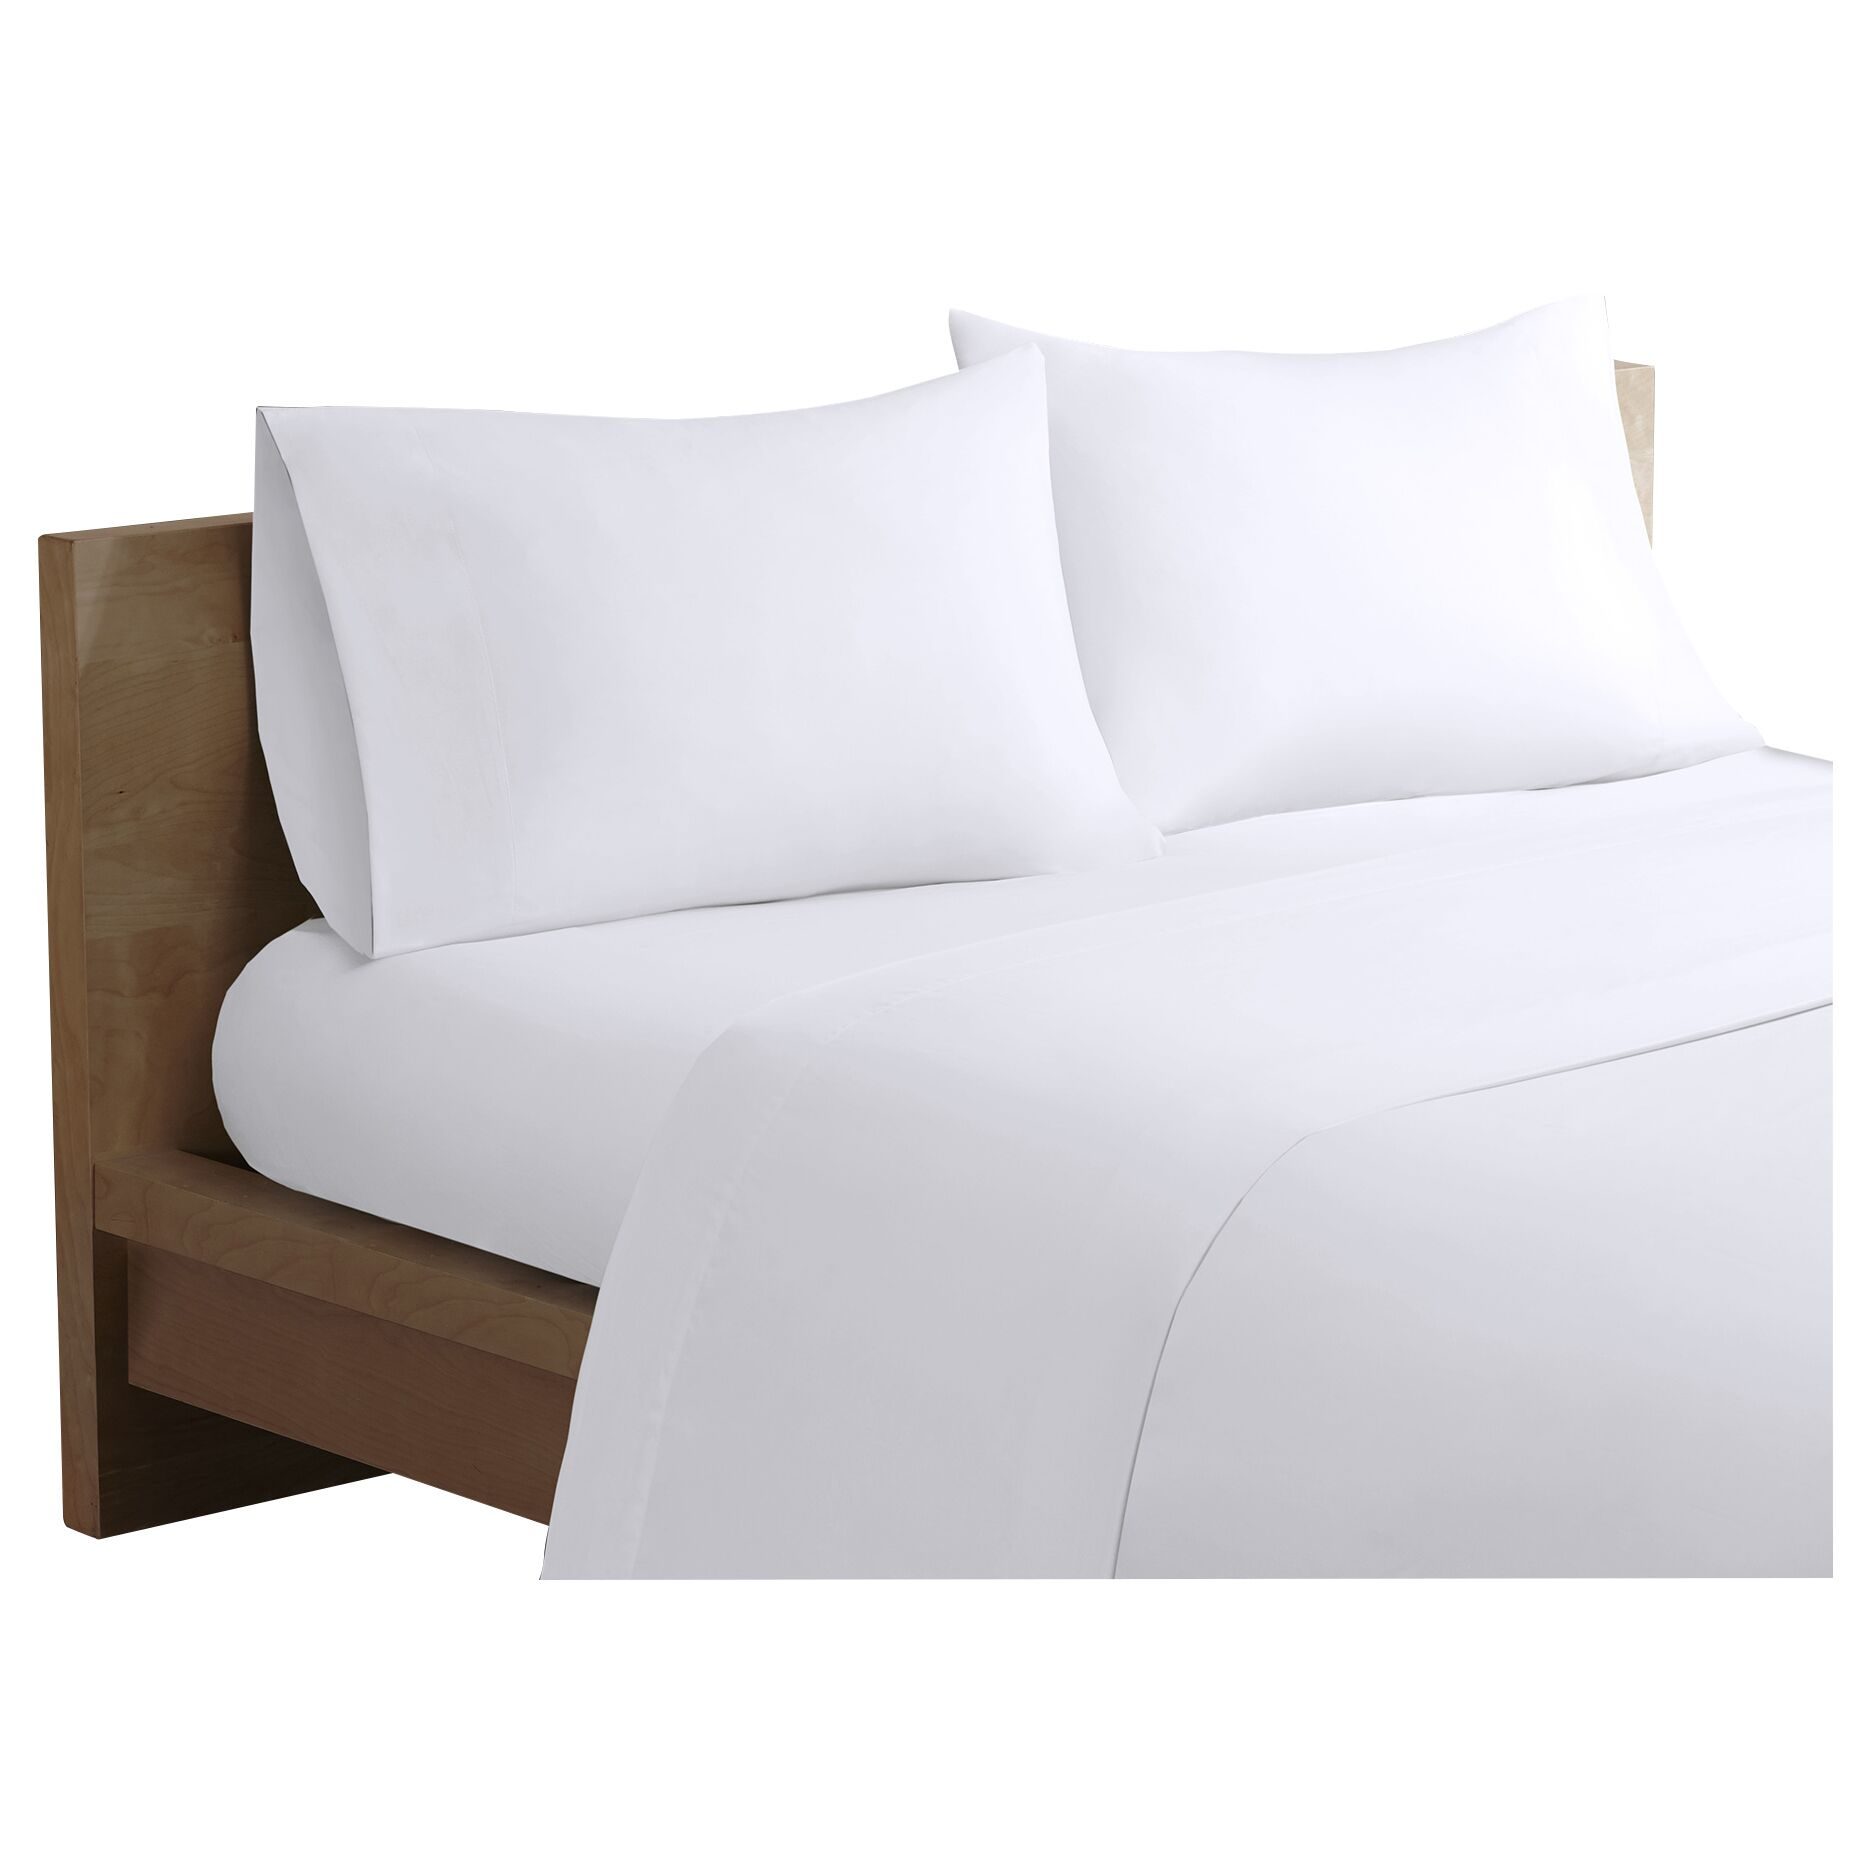 Bridget Forever Percale 200 Thread Count Cotton Sheet Set Color: White, Size: King